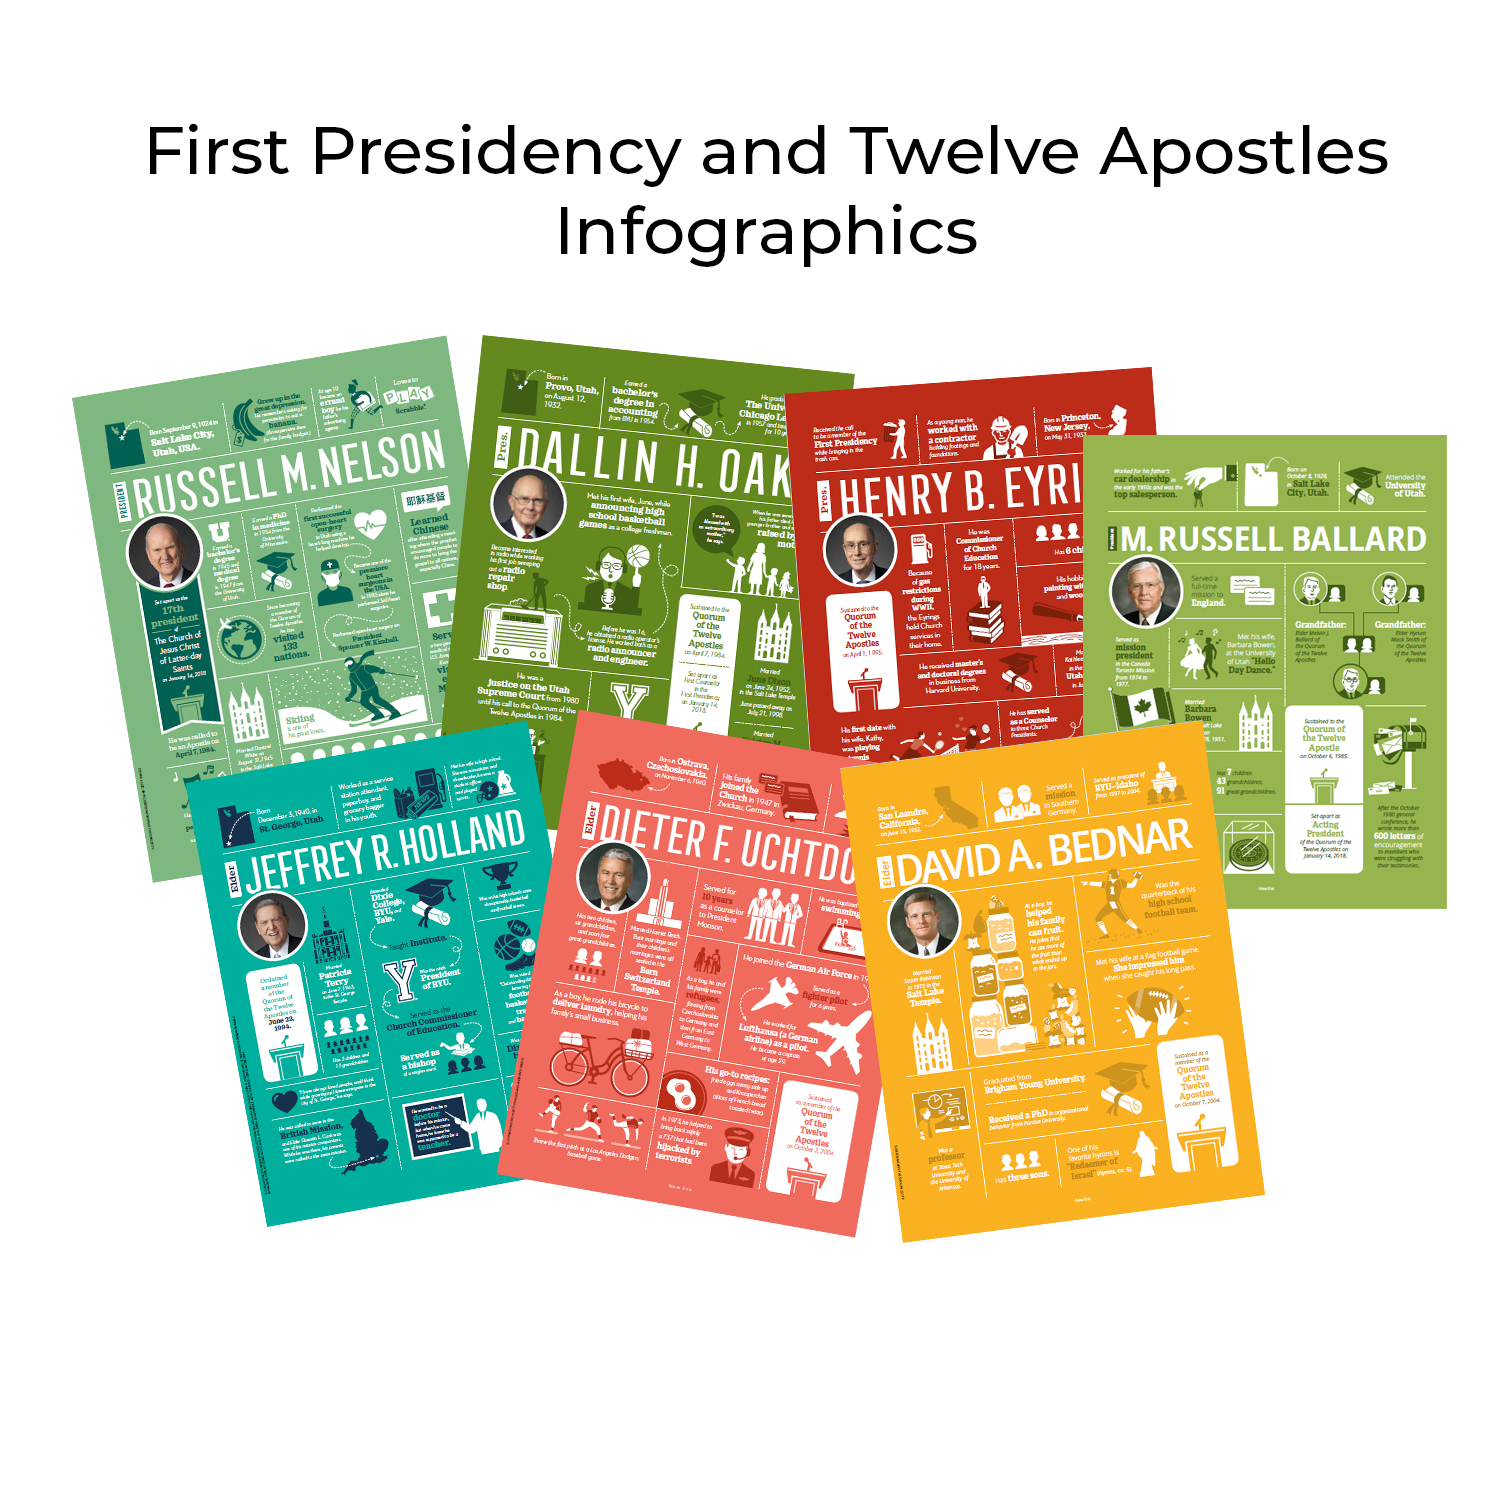 Get To Know The First Presidency And Twelve Apostles